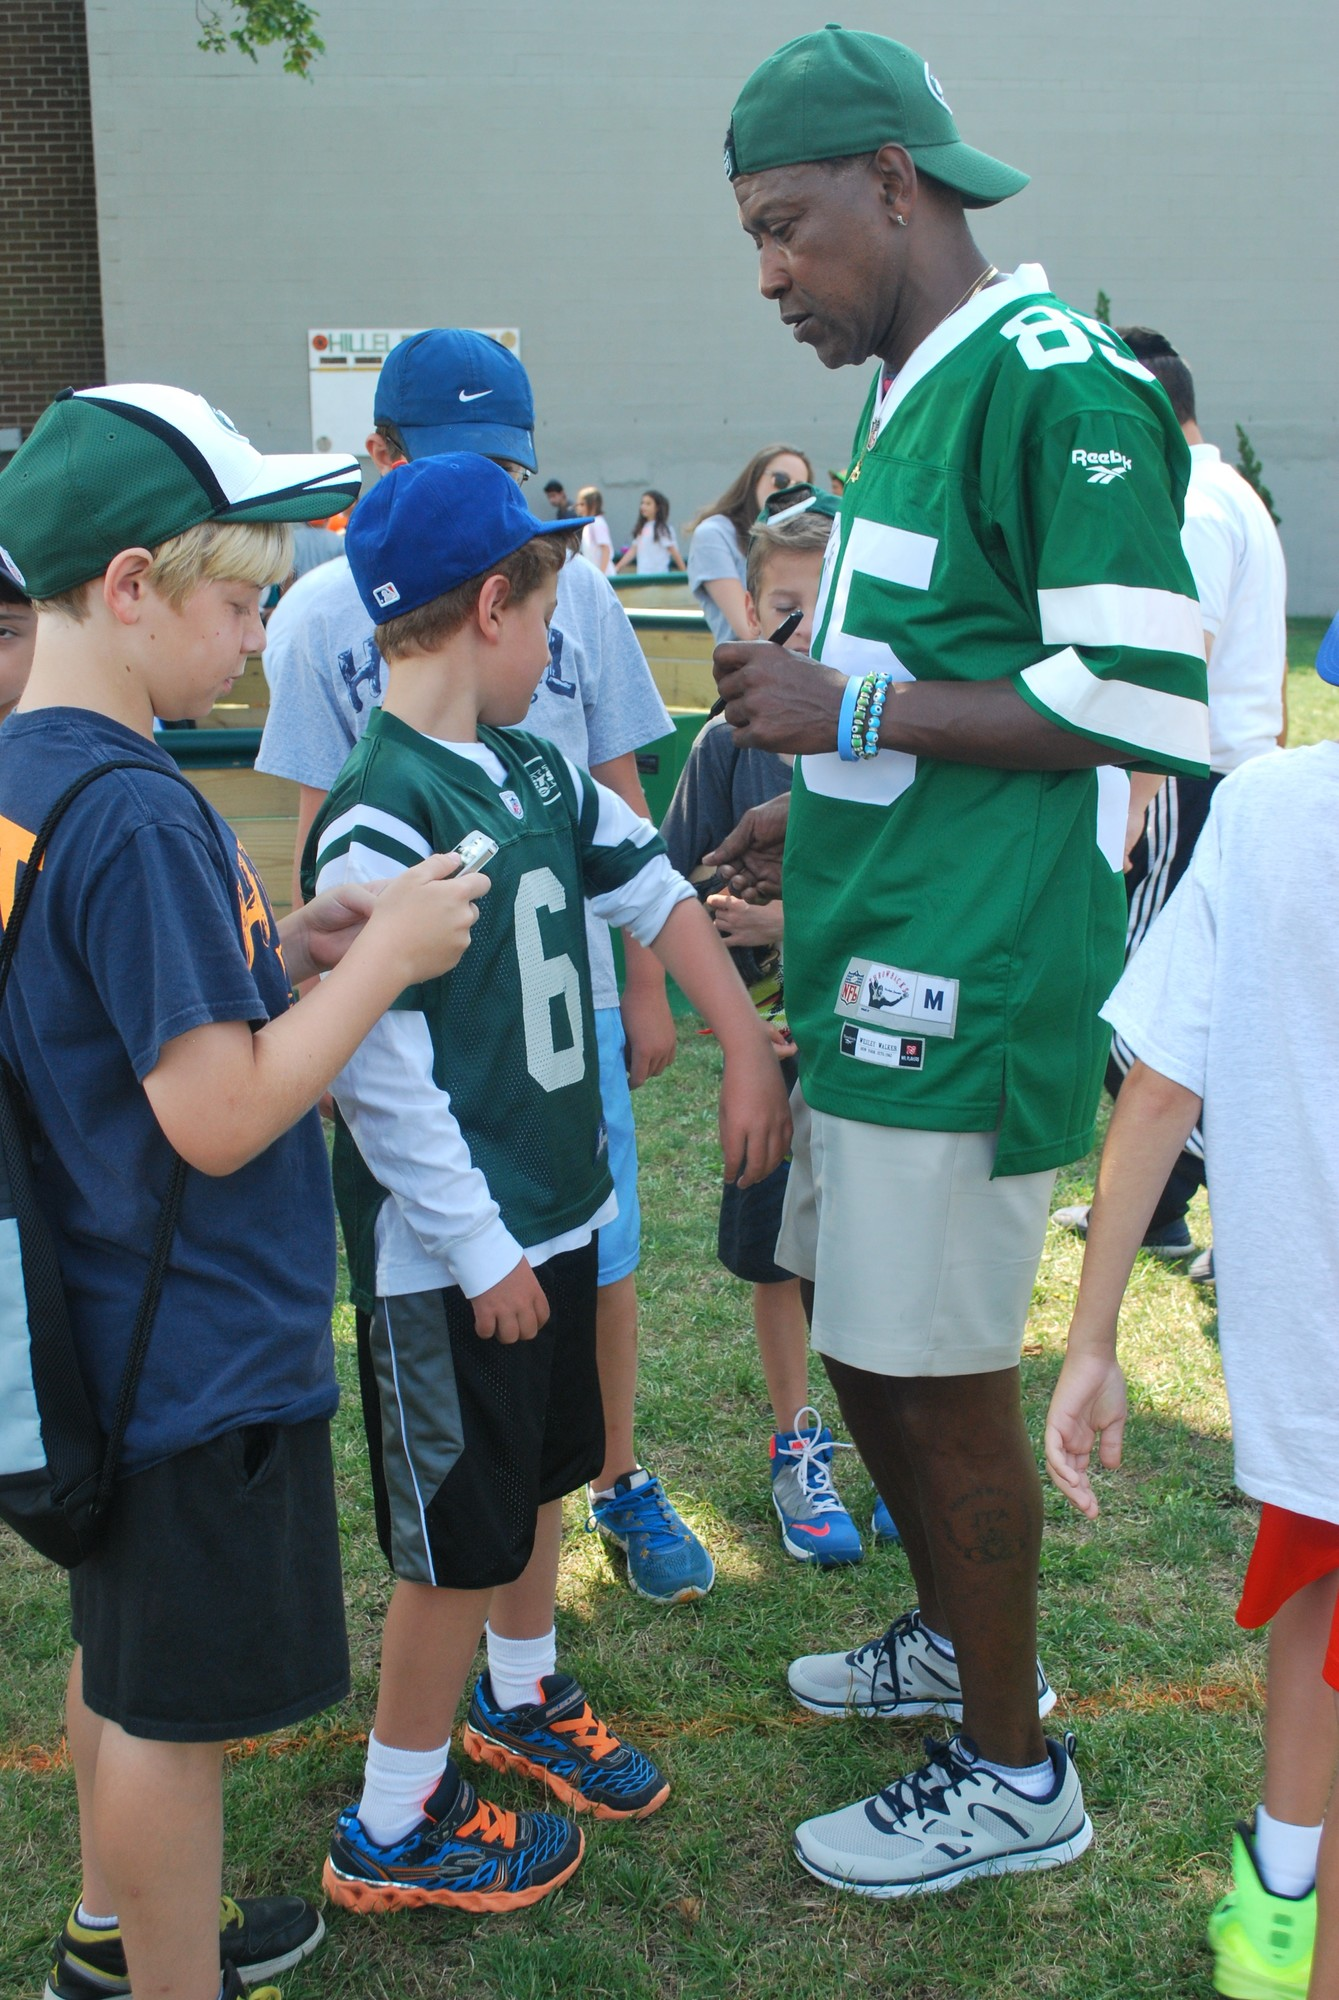 Camp Hillel in Lawrence hosted former New York Jets wide receiver Wesley Walker on Aug. 8, and he signed his name to shirts, hats and football helmets.